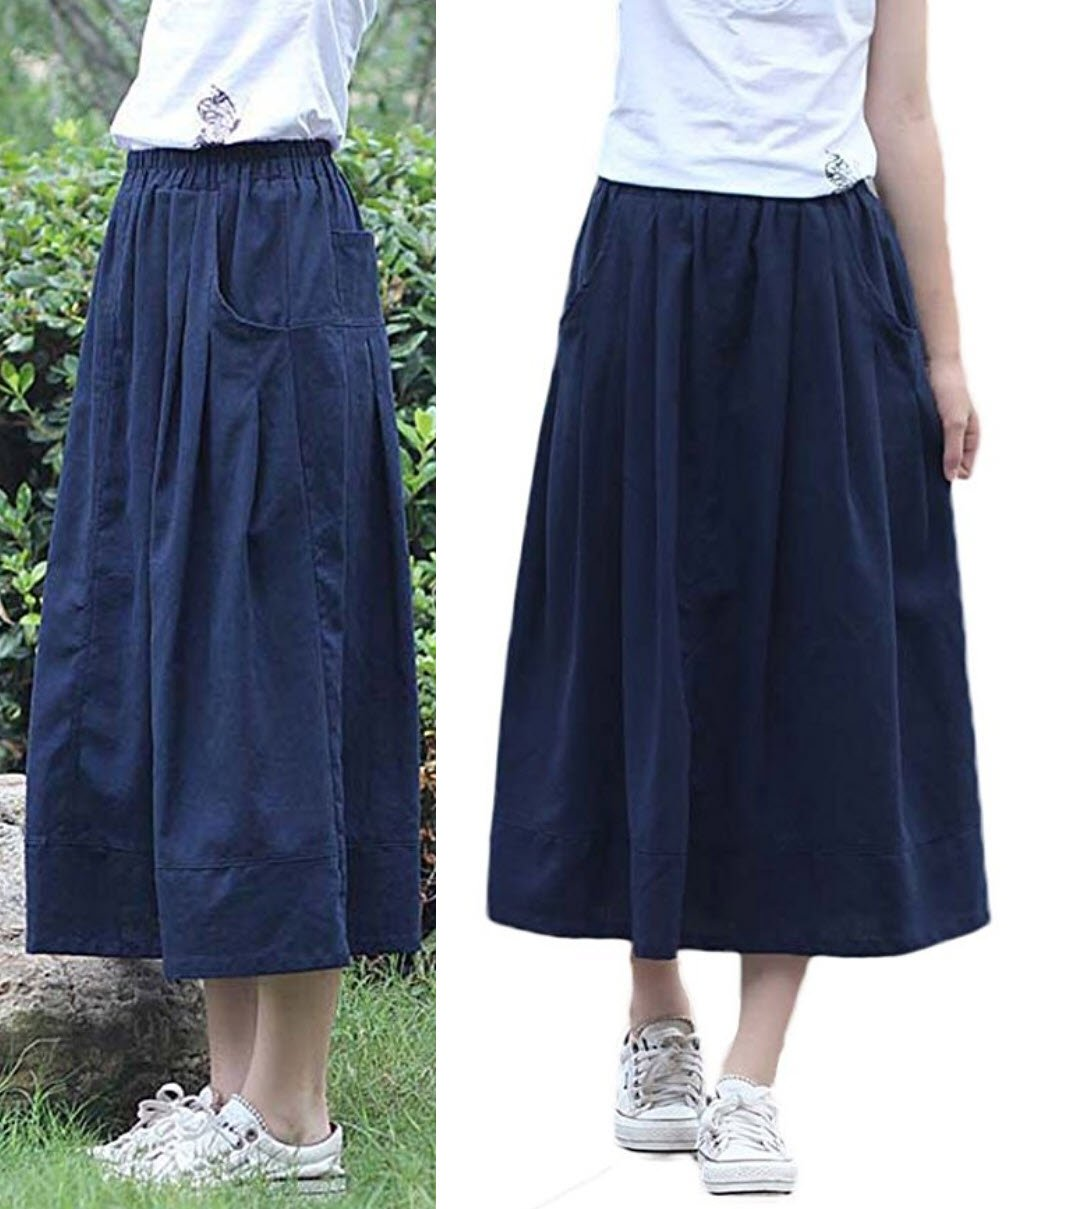 skirt fashion trends